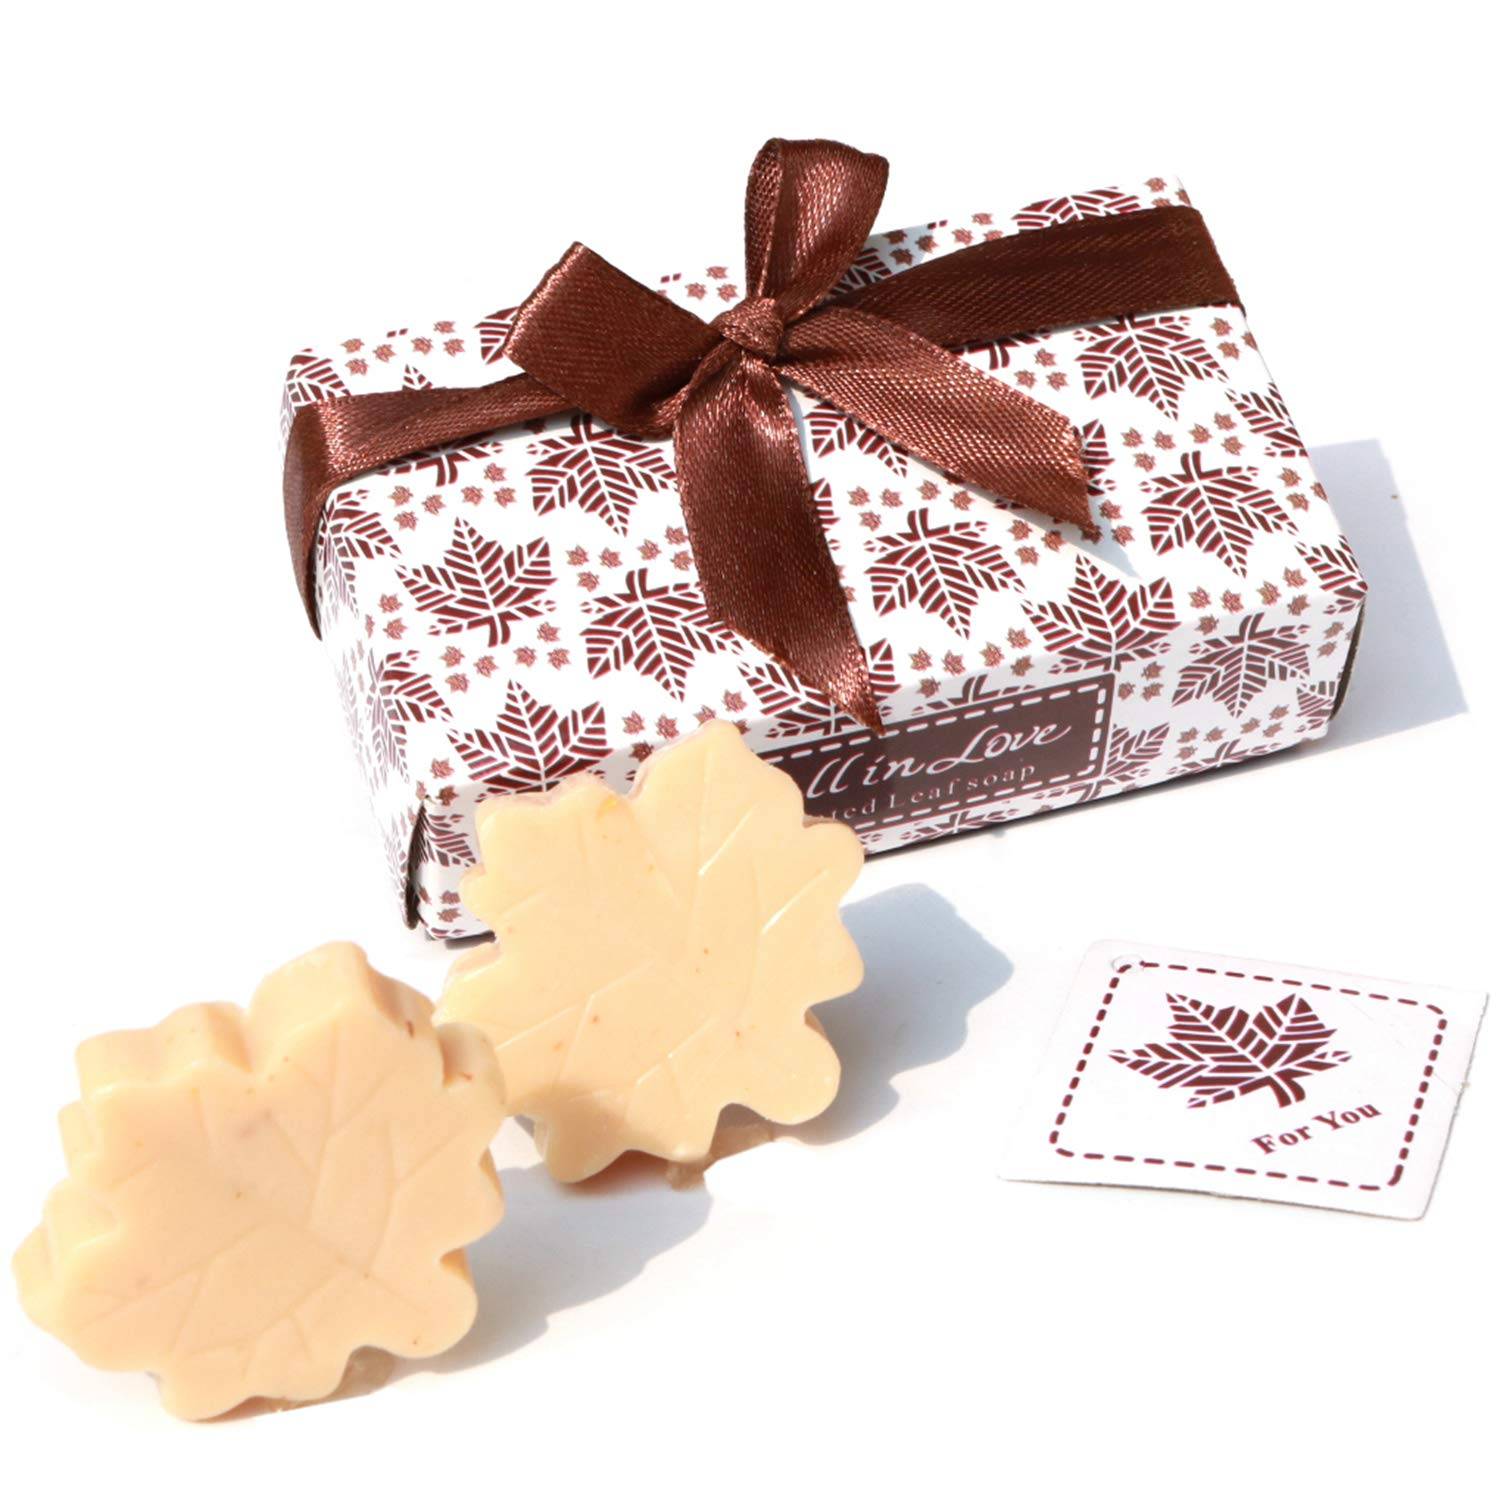 Best Fall Wedding Favors For Guests Amazon